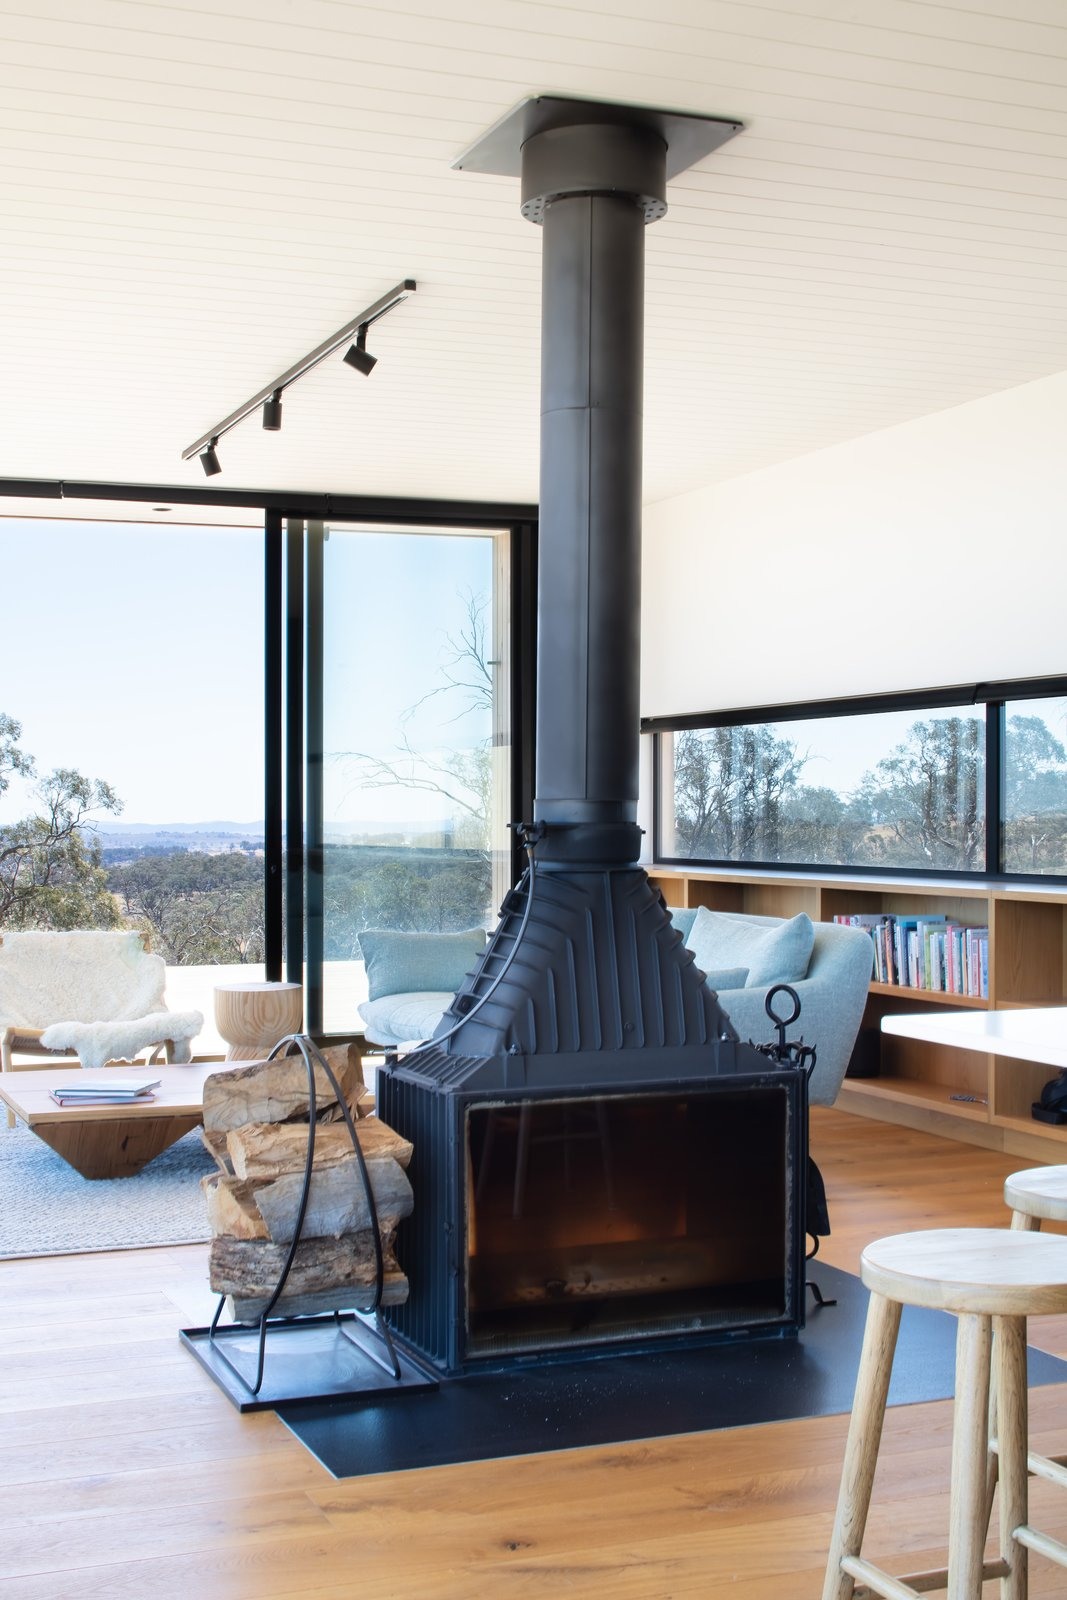 Living room with fireplace at Kangaroobie by Modscape.